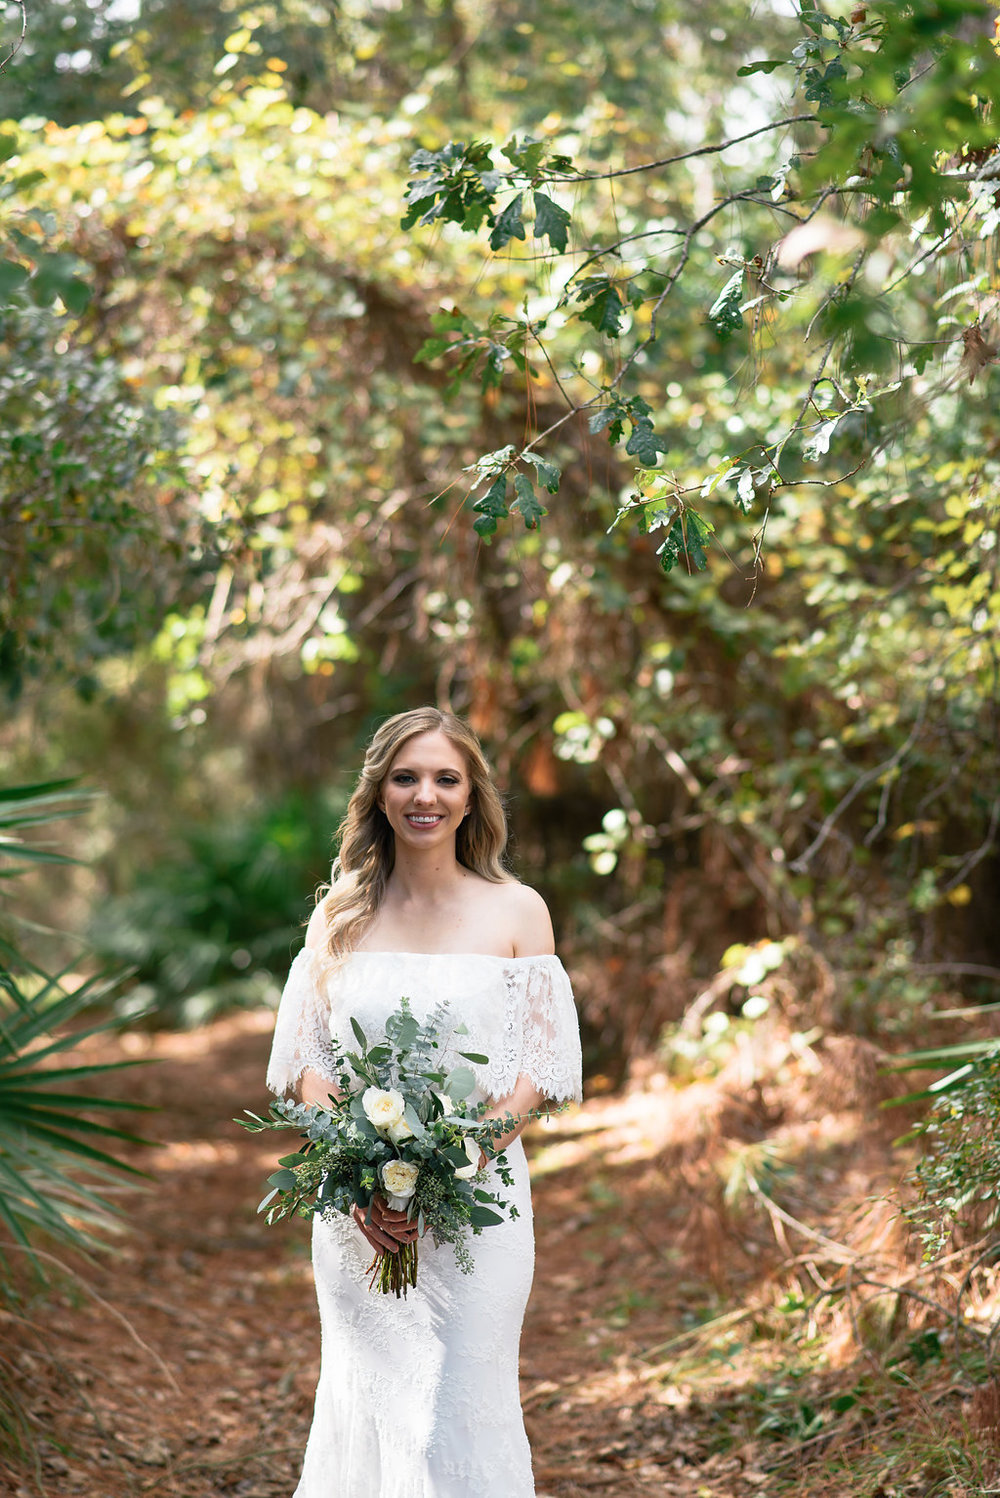 ivory-and-beau-bridal-boutique-meg-hill-photography-laurence-daughters-of-simone-boho-wedding-gown-douglas-ga-wedding-9.jpg